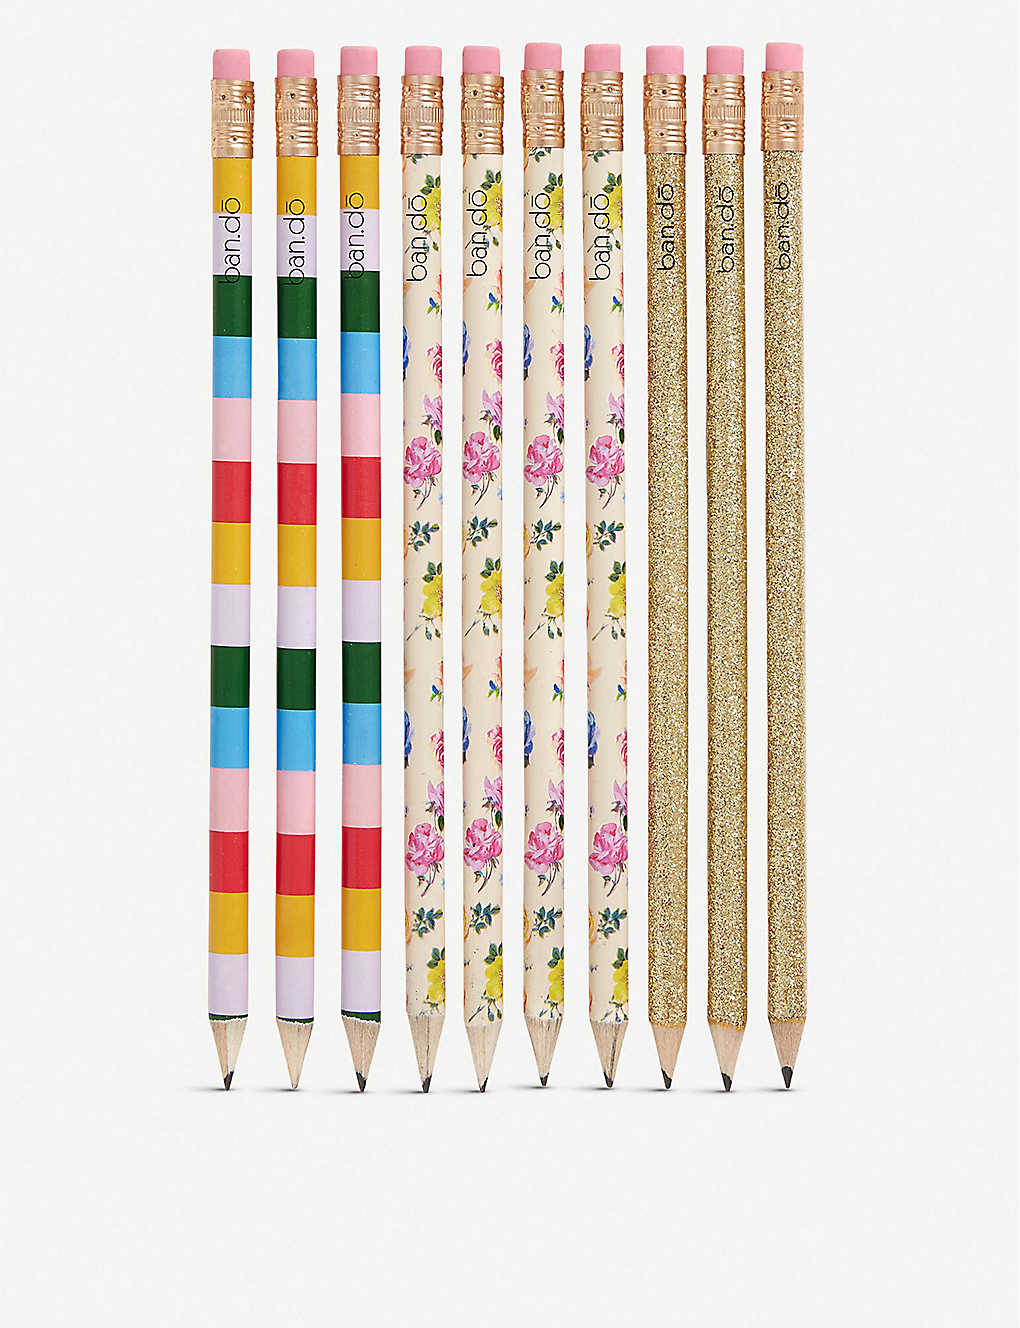 BANDO: Coming Up Roses graphite pencil set of 10